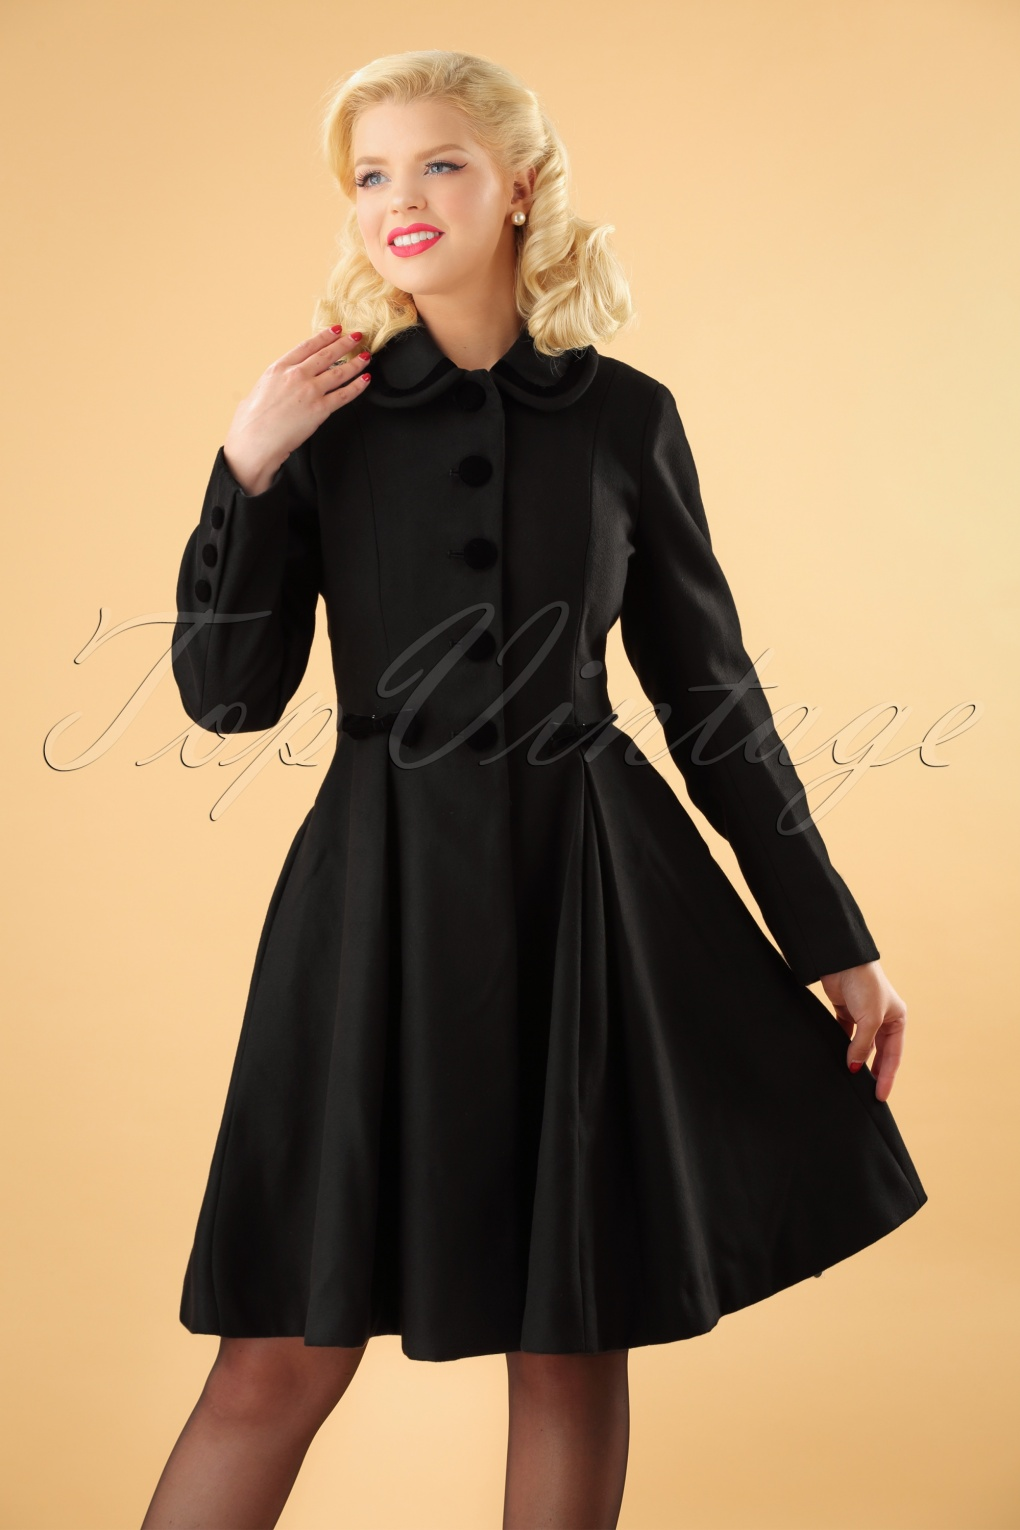 1950s Jackets, Coats, Bolero | Swing, Pin Up, Rockabilly 50s Olivia Bow Coat in Black £67.17 AT vintagedancer.com